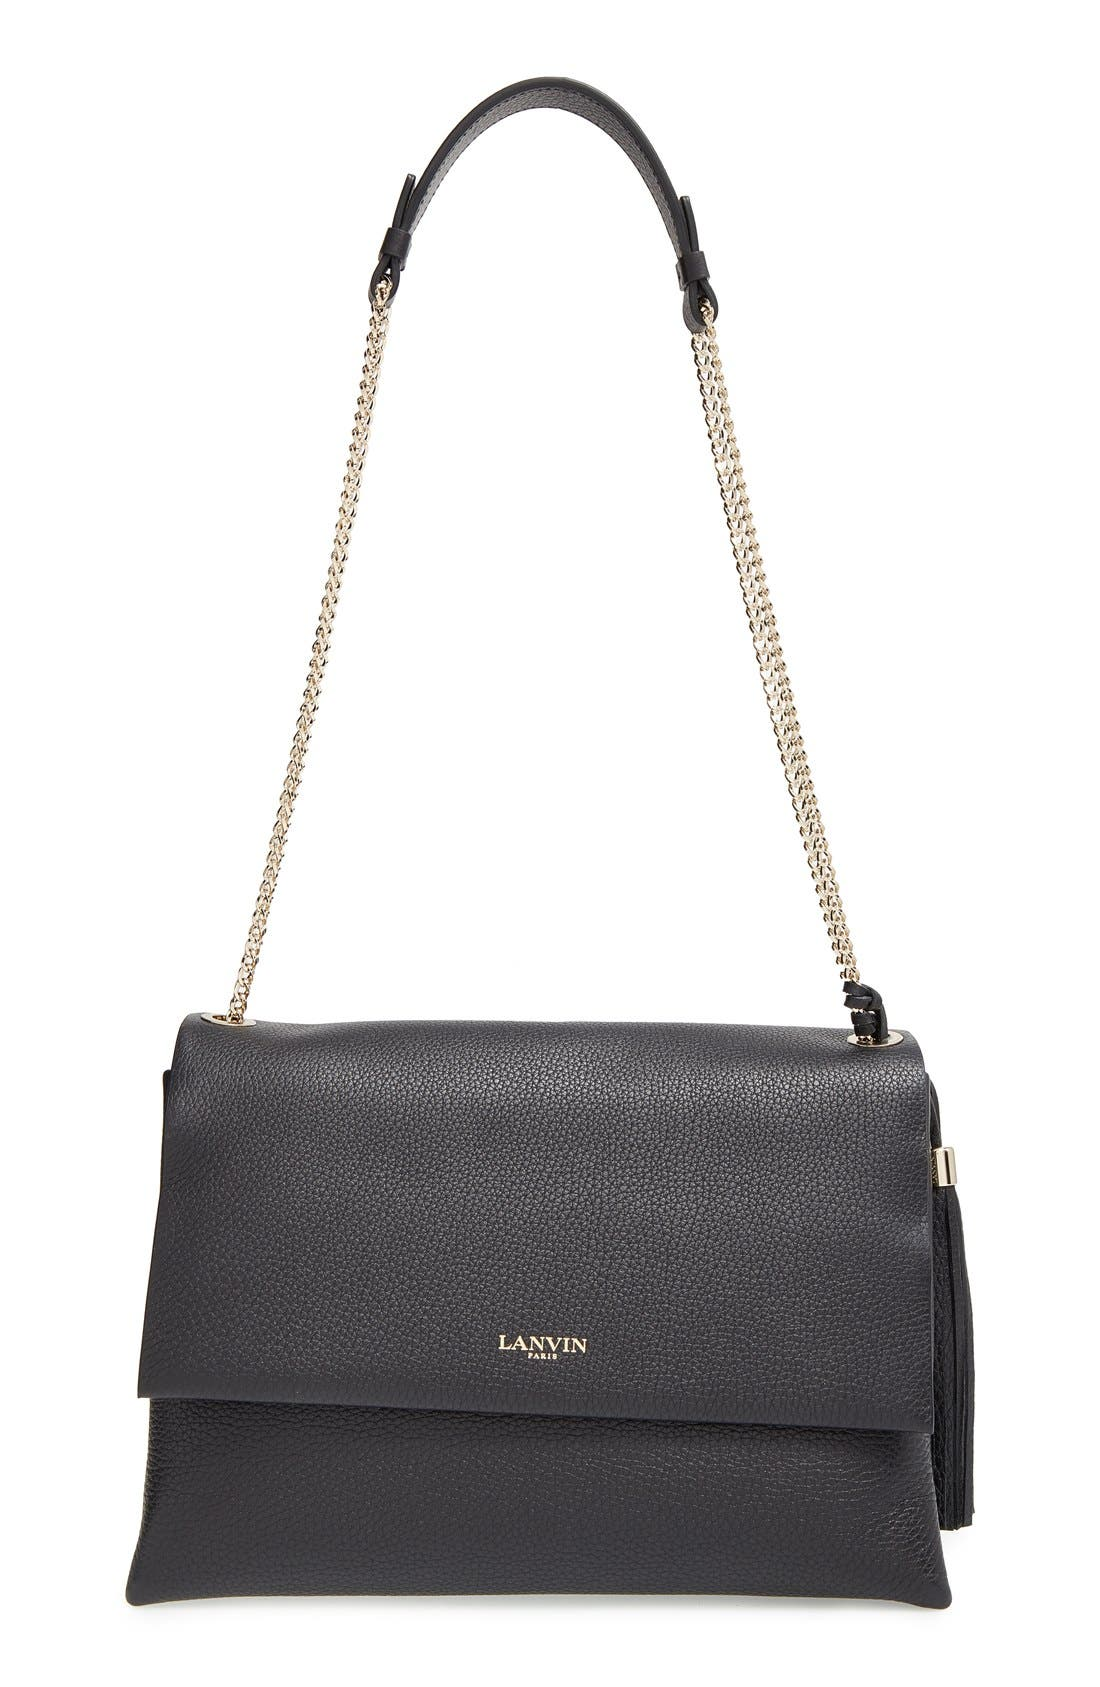 Main Image - Lanvin 'Large Sugar' Tasseled Leather Shoulder Bag